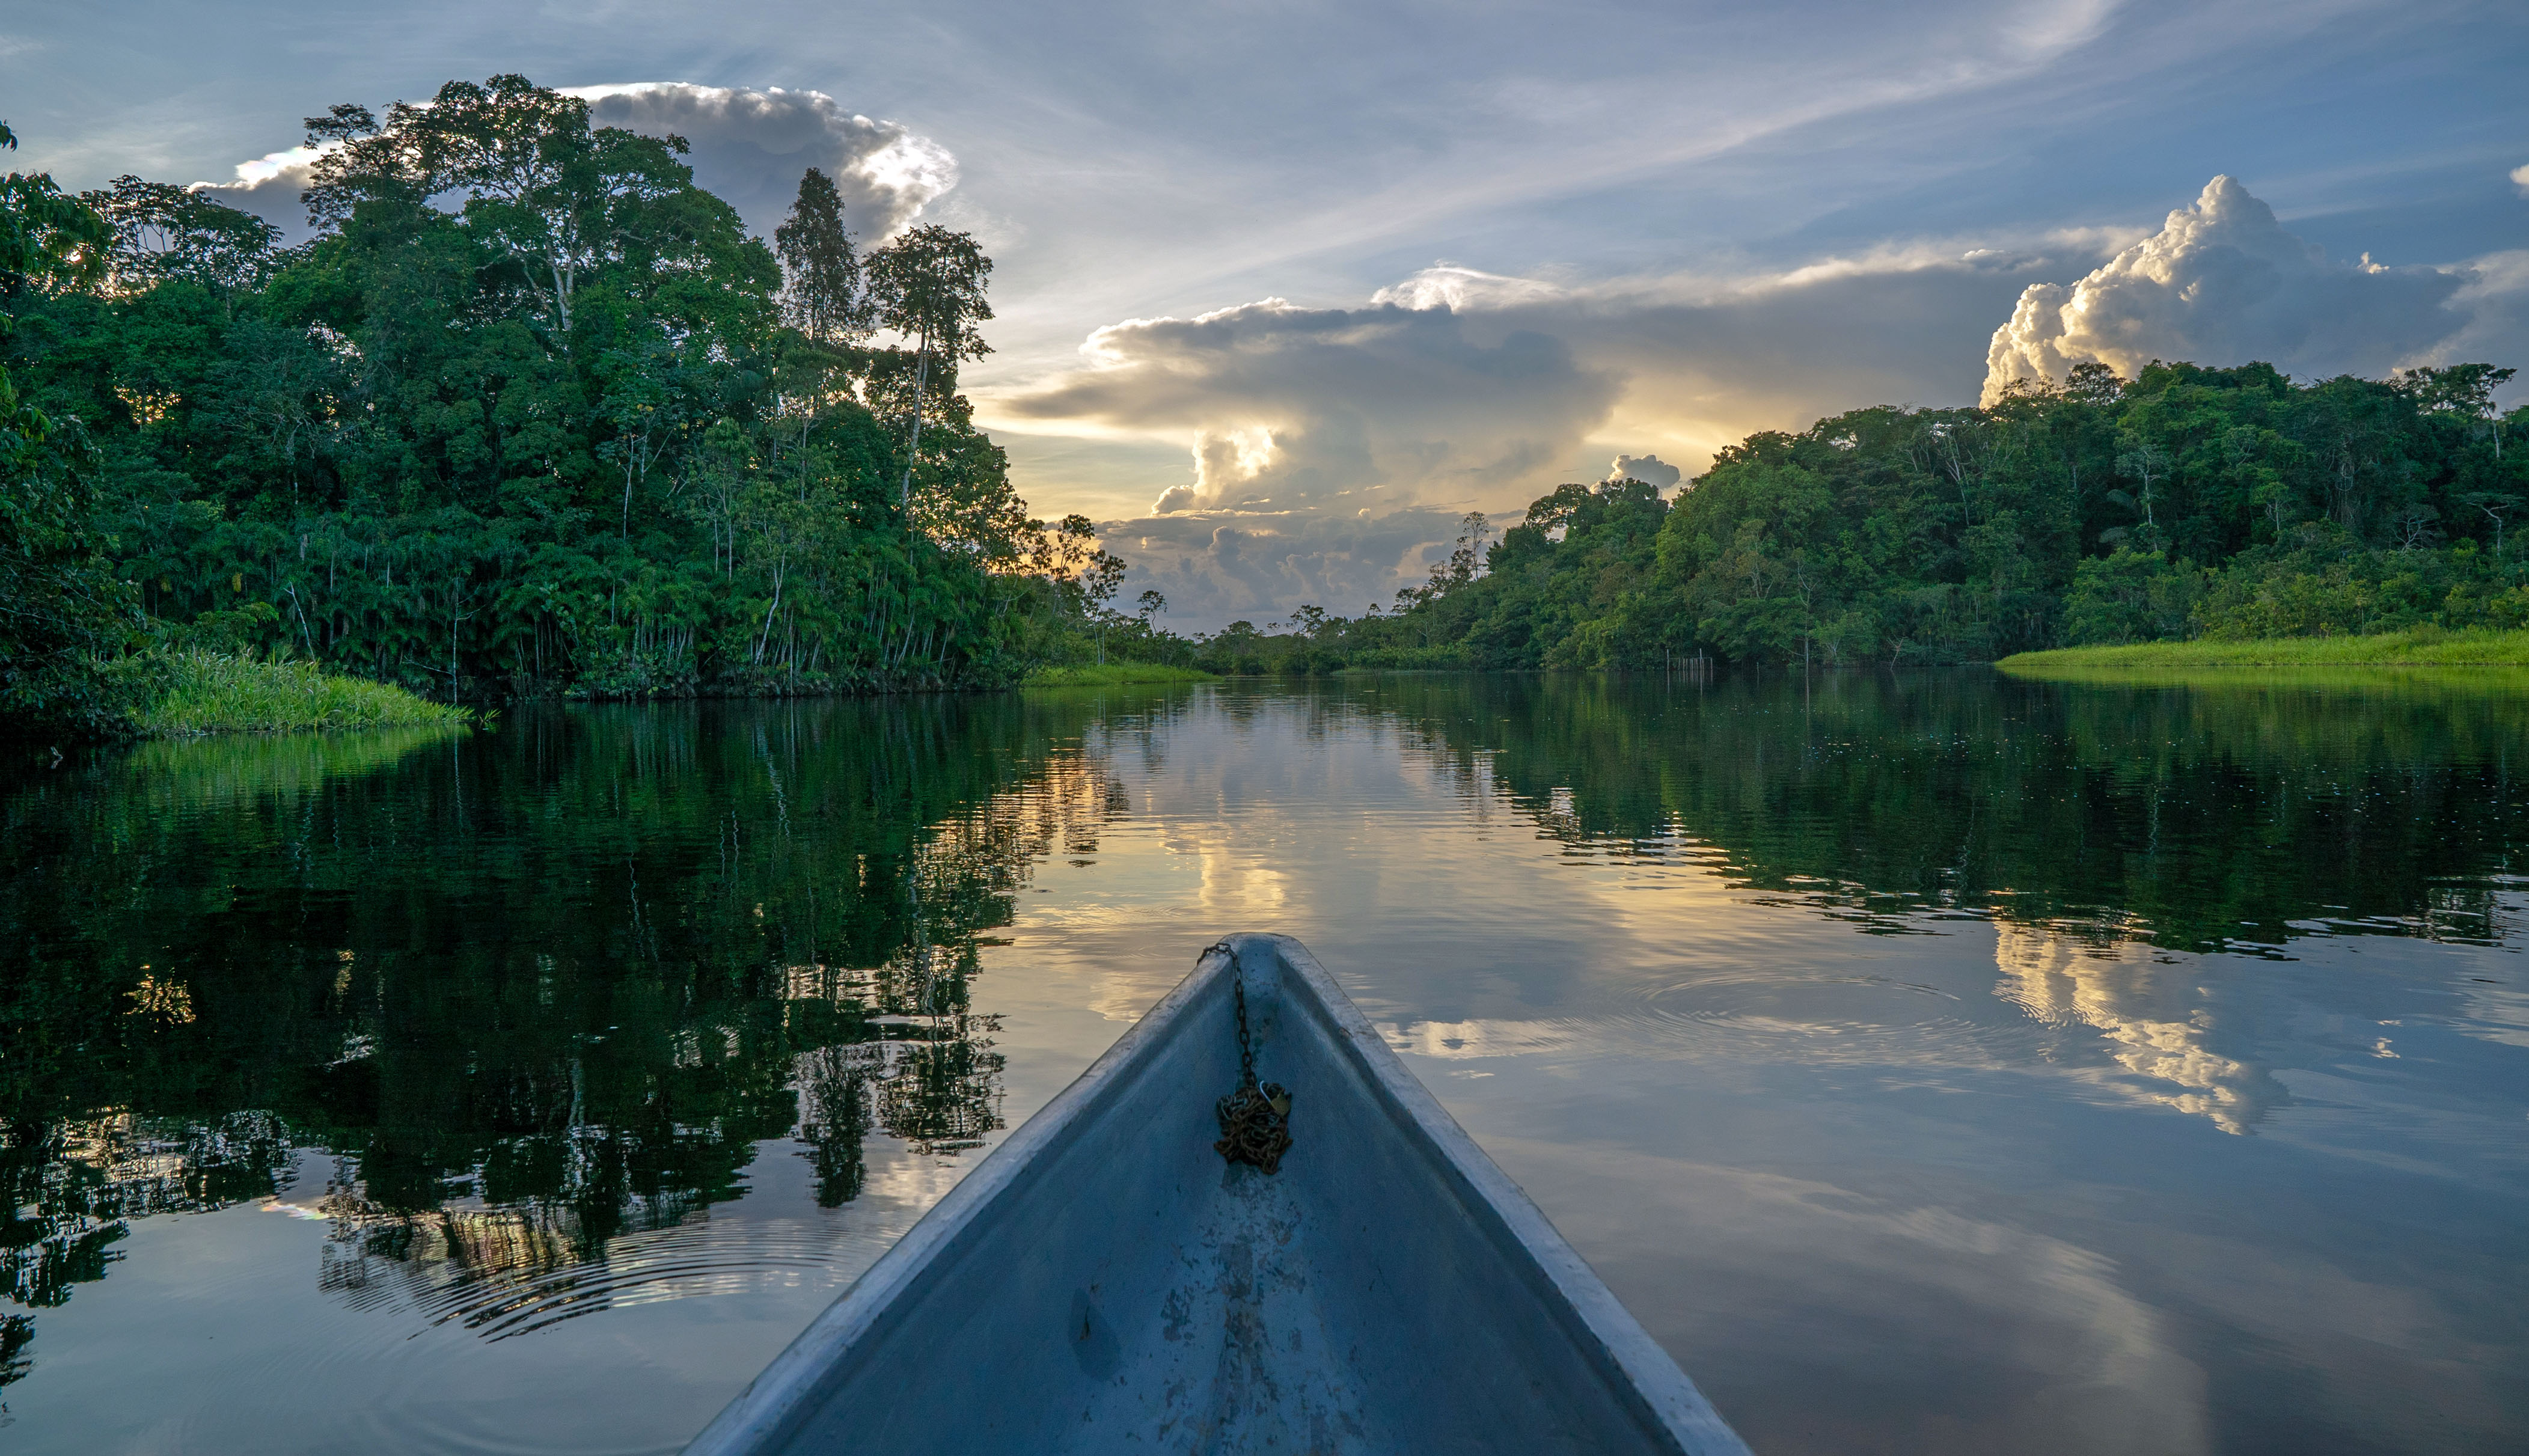 Sunset View from Canoe